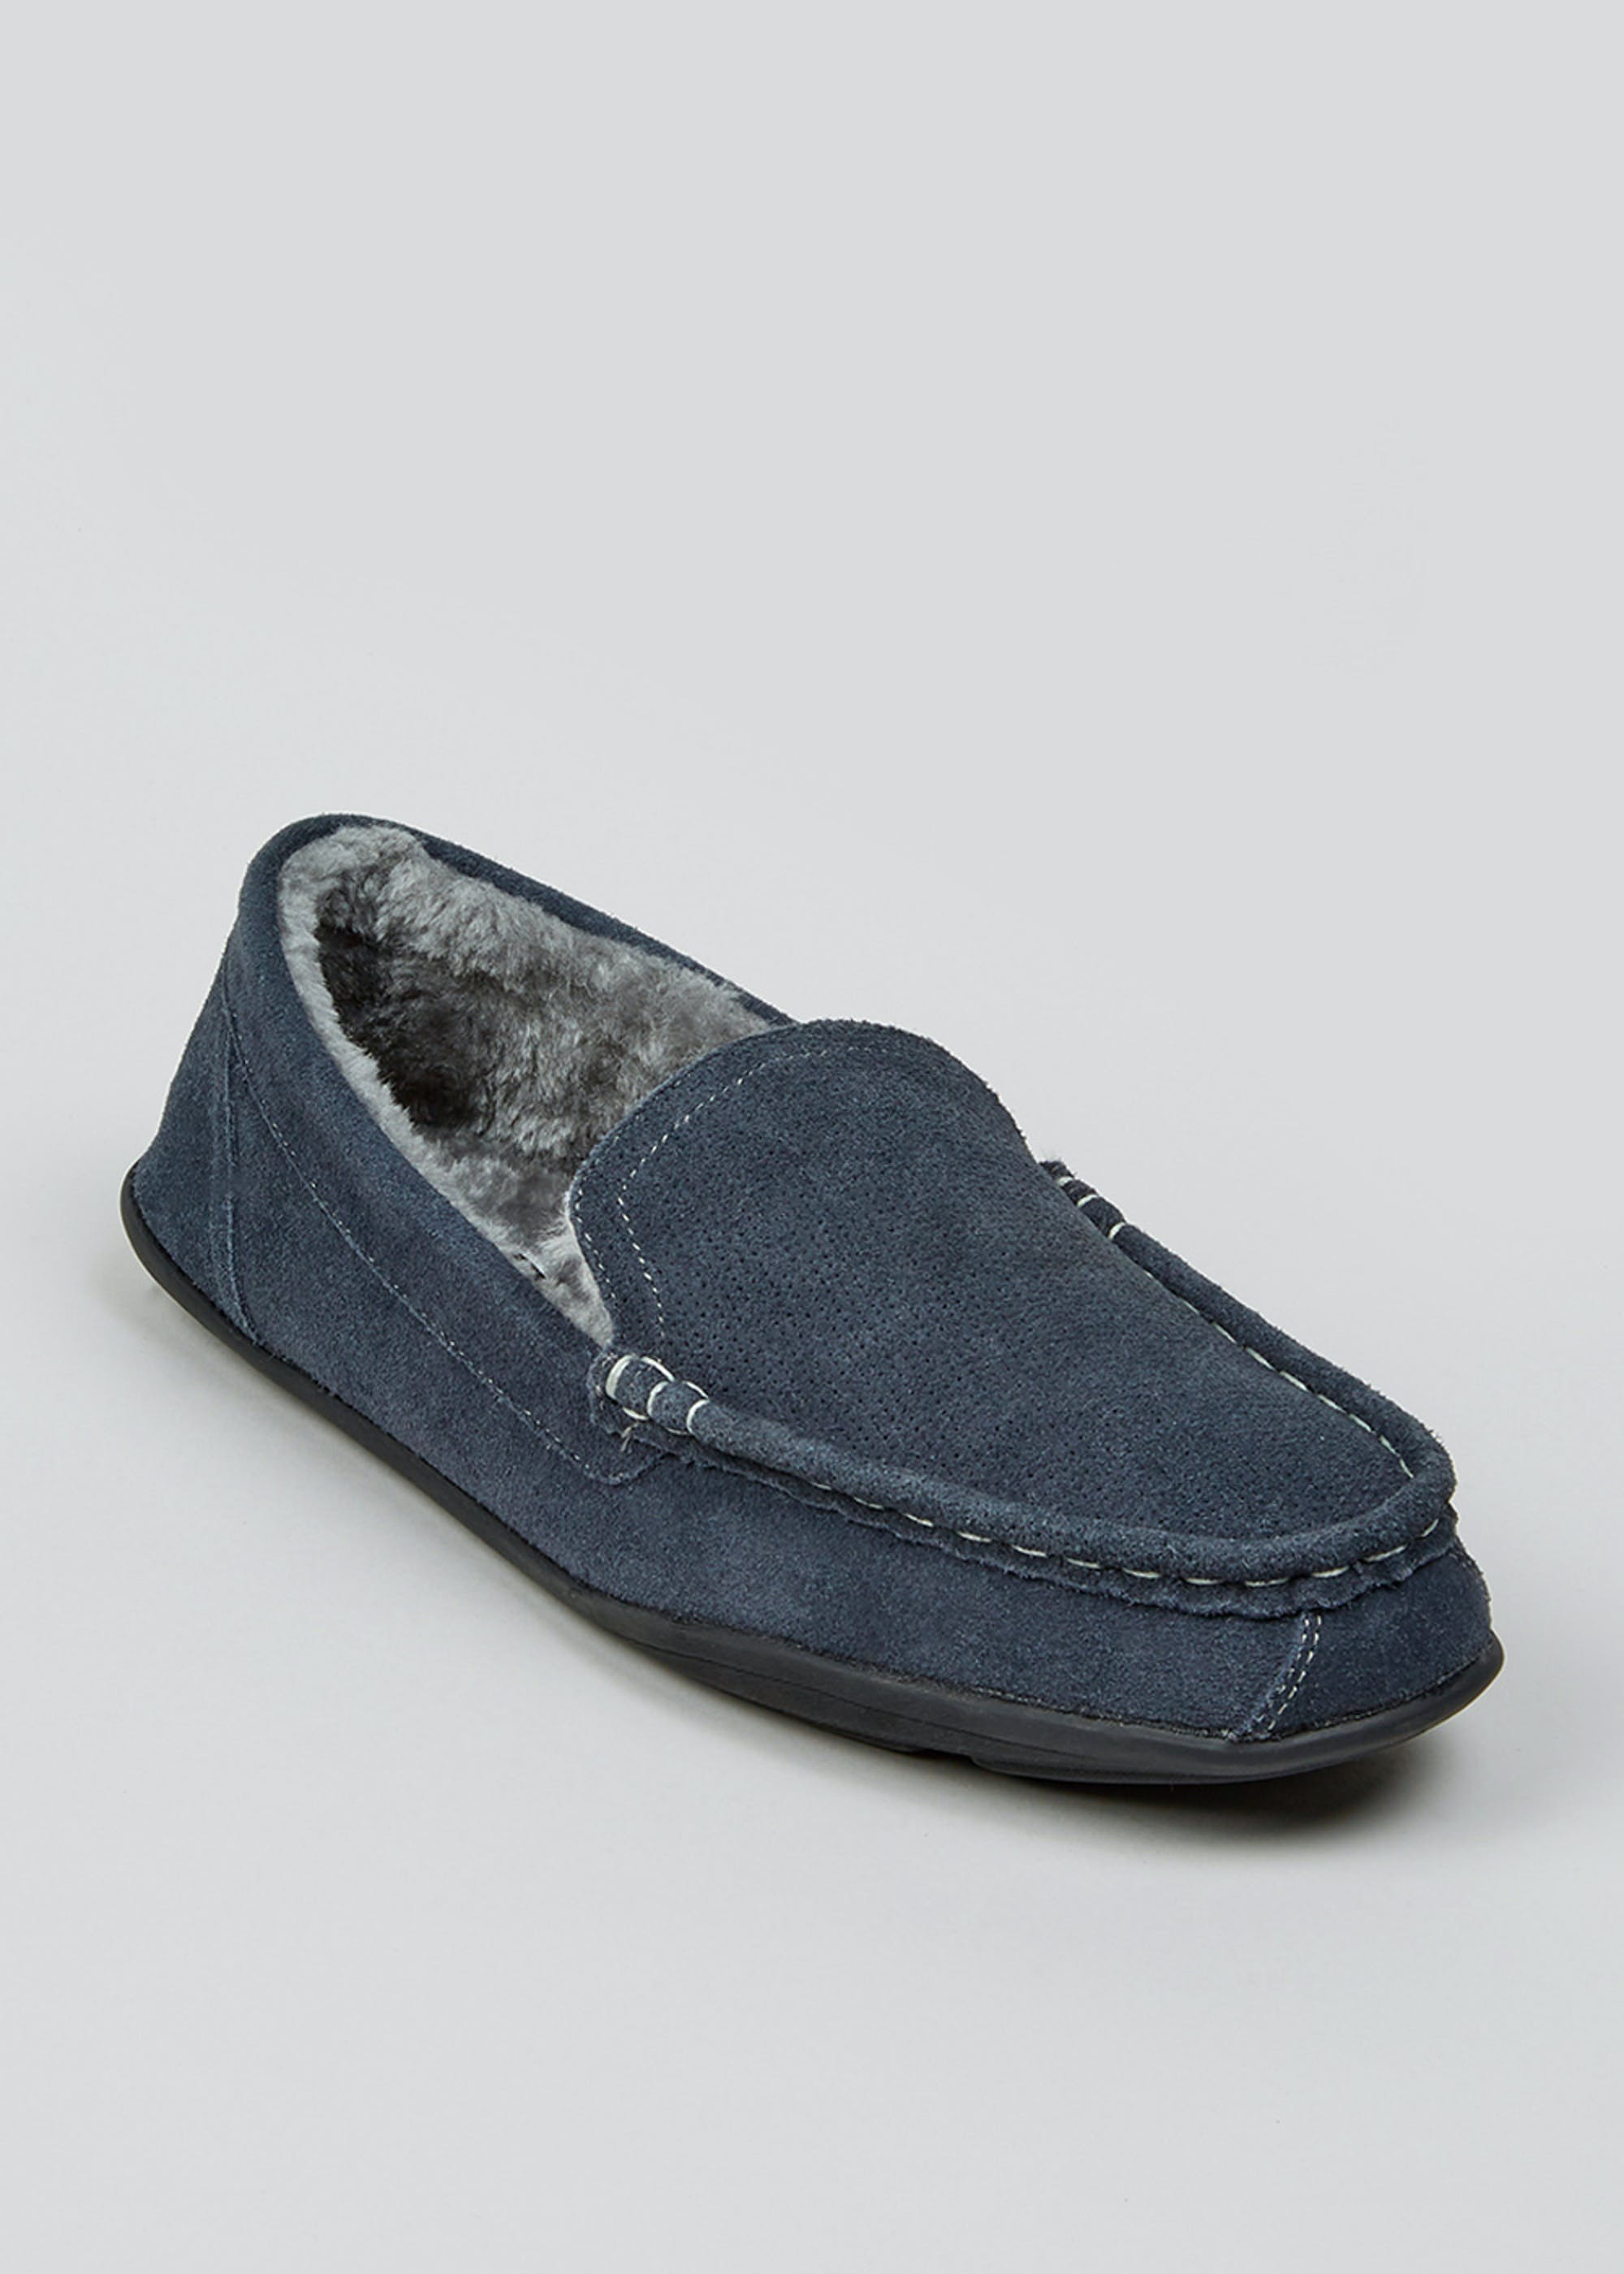 Grey Real Suede Moccasin Slippers Grey U3ATxi